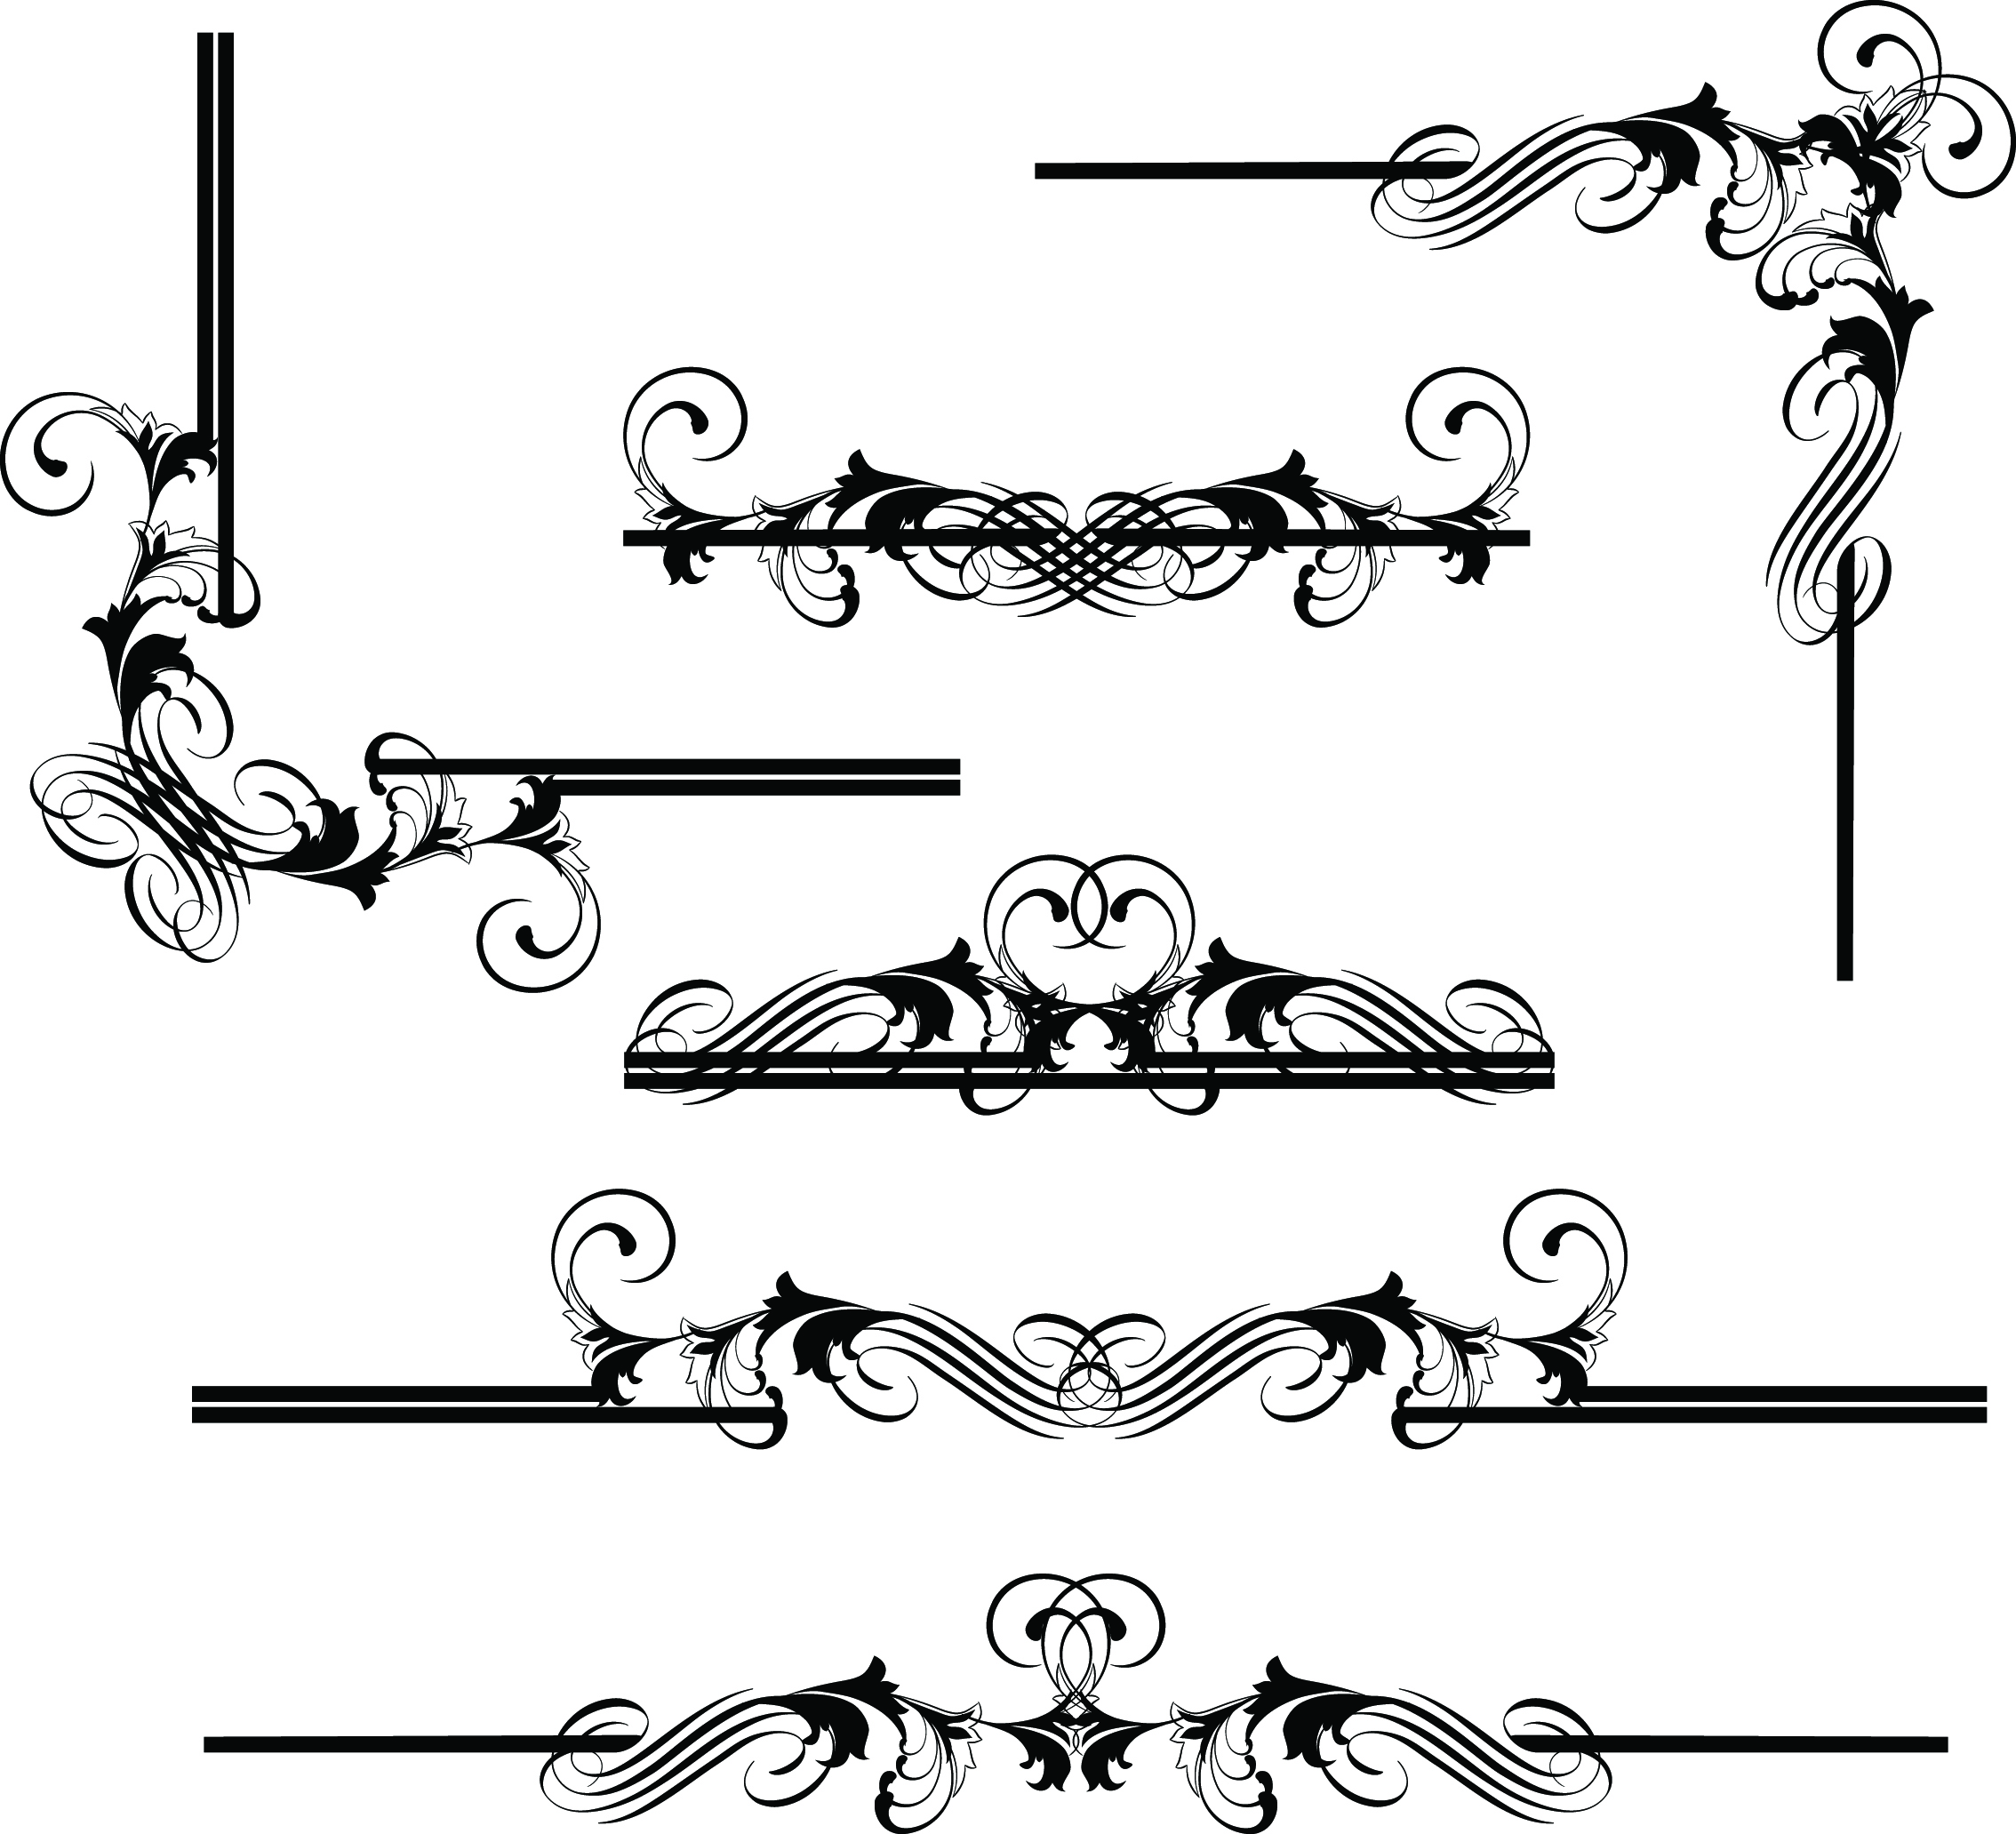 Line Art Border Designs : Border line design free download cliparts